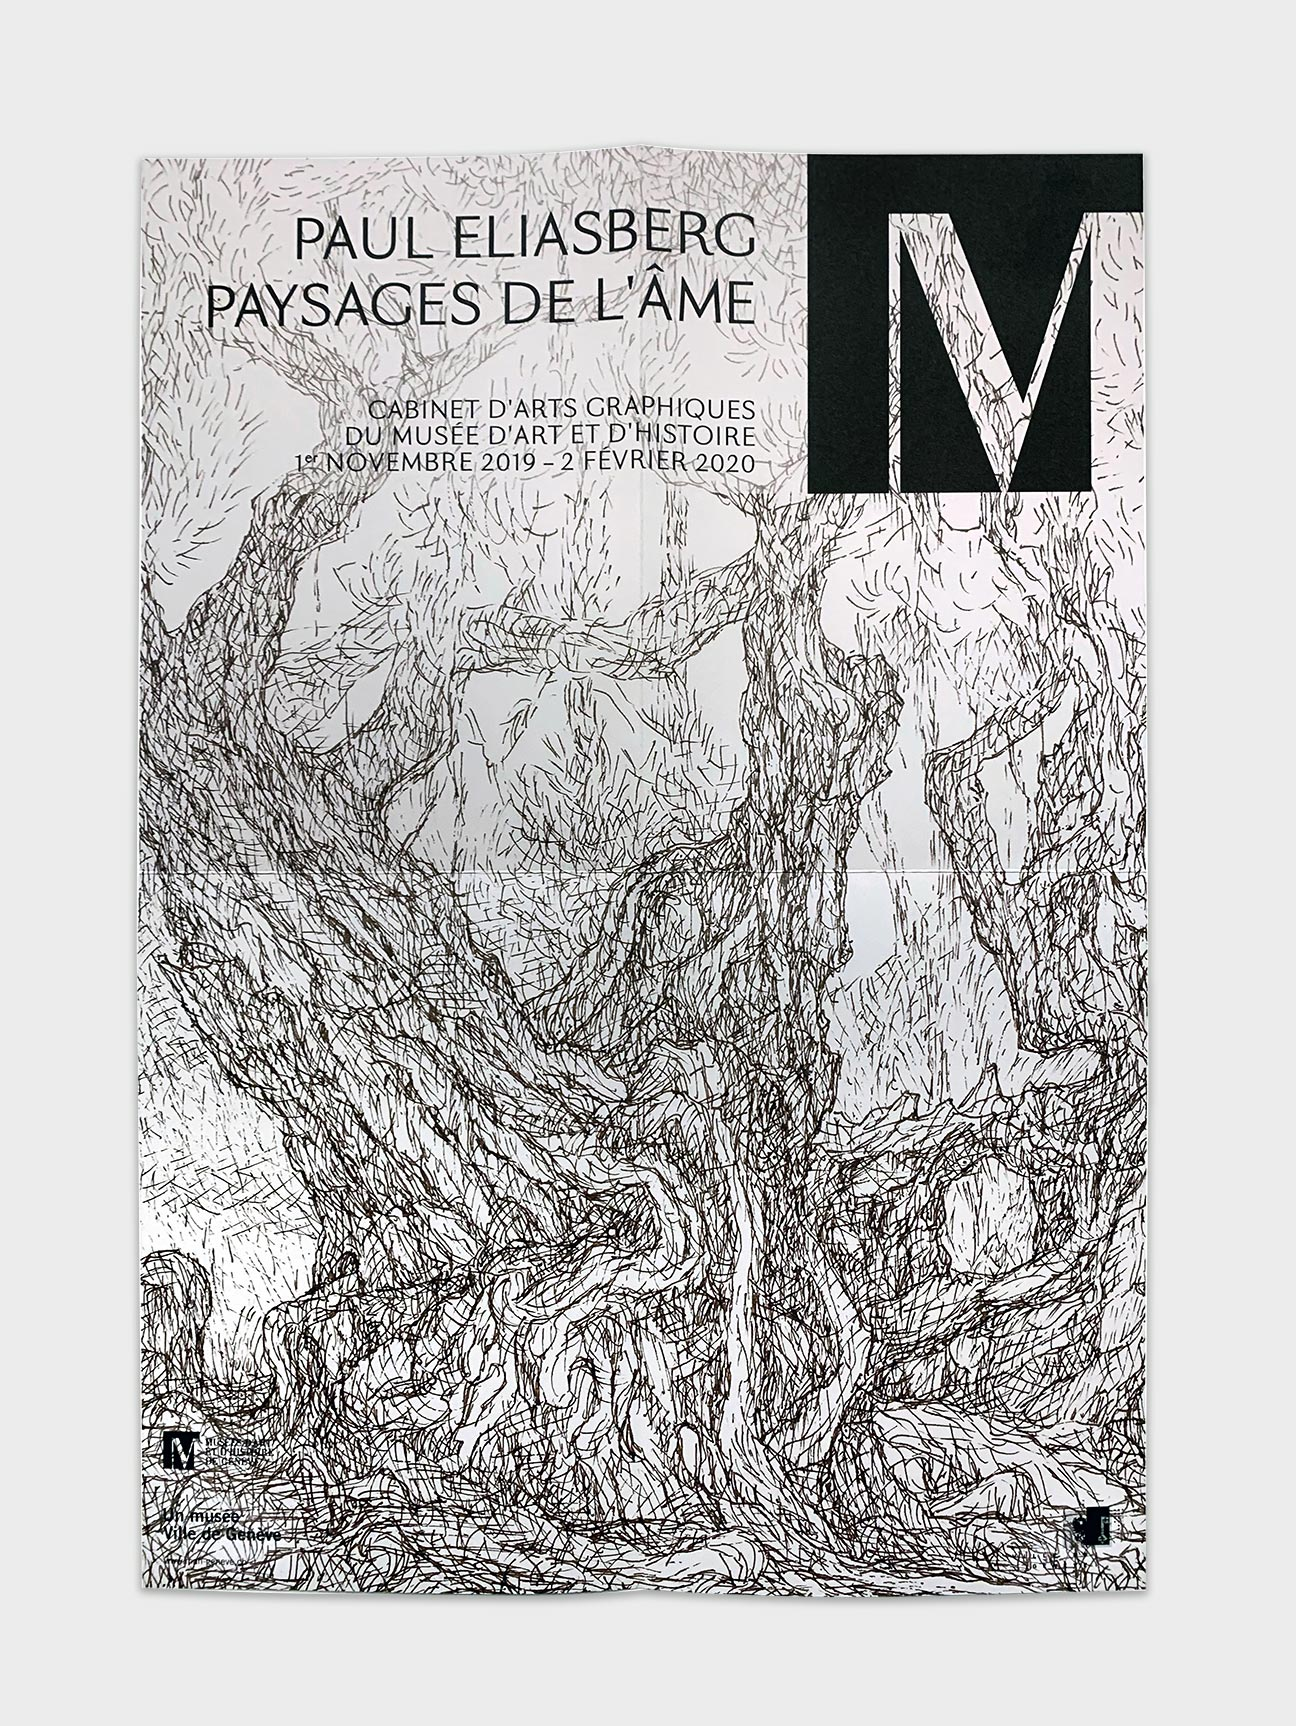 fabien_cuffel_graphisme_Typo_graphisme_Poster_A3_EXPO_ELIASBERG_geneve_musee_mah